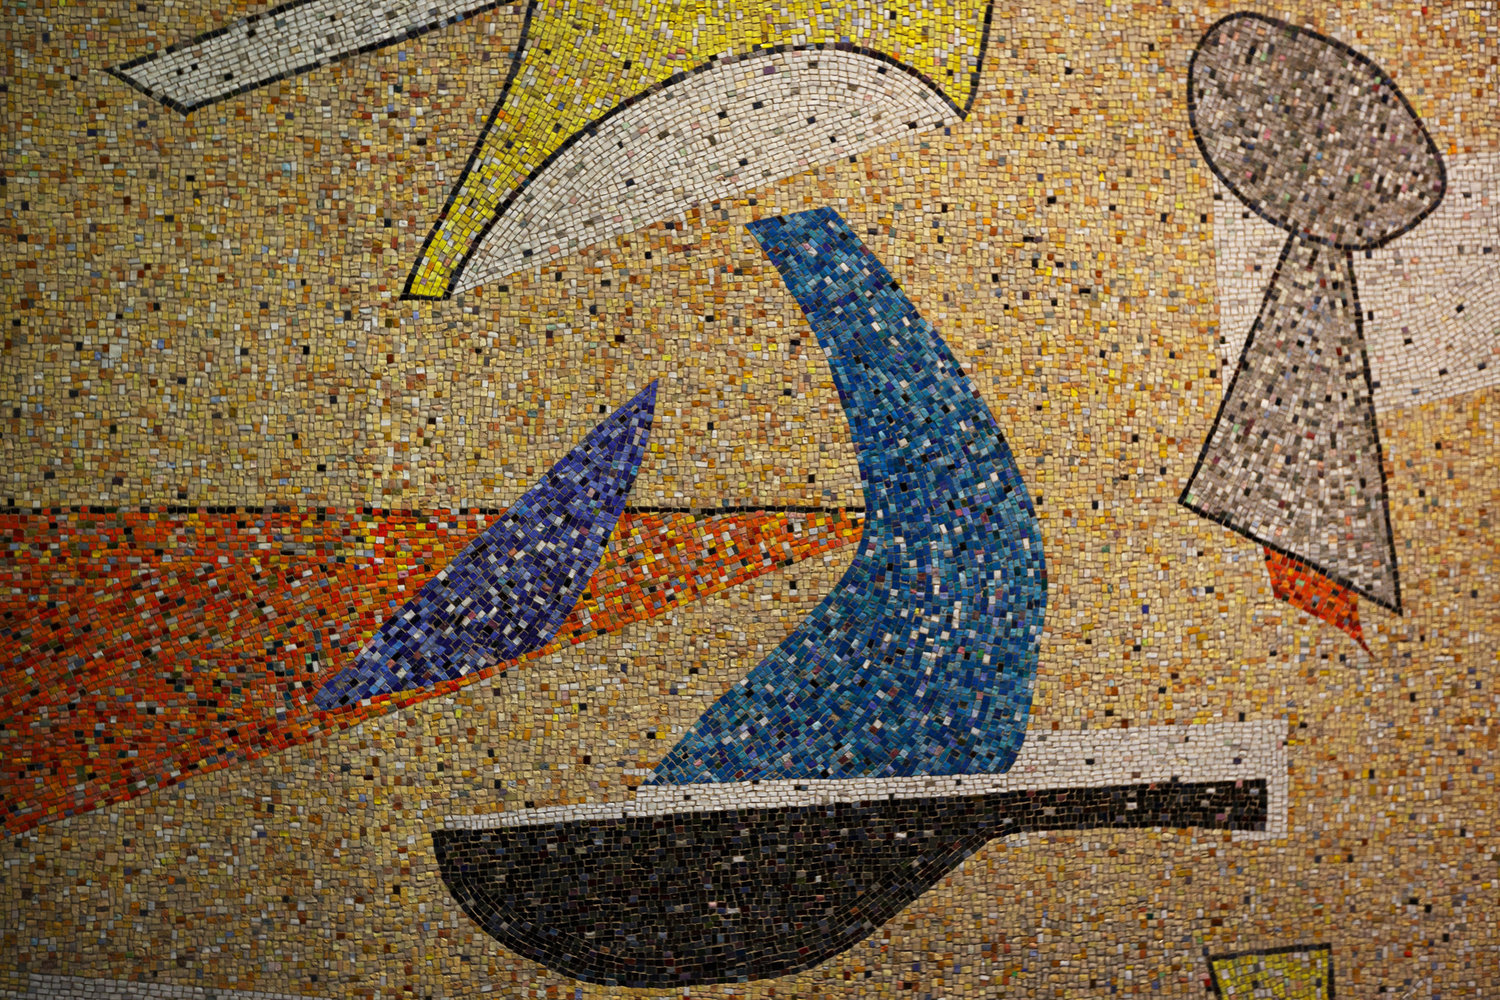 A detail of the mural.